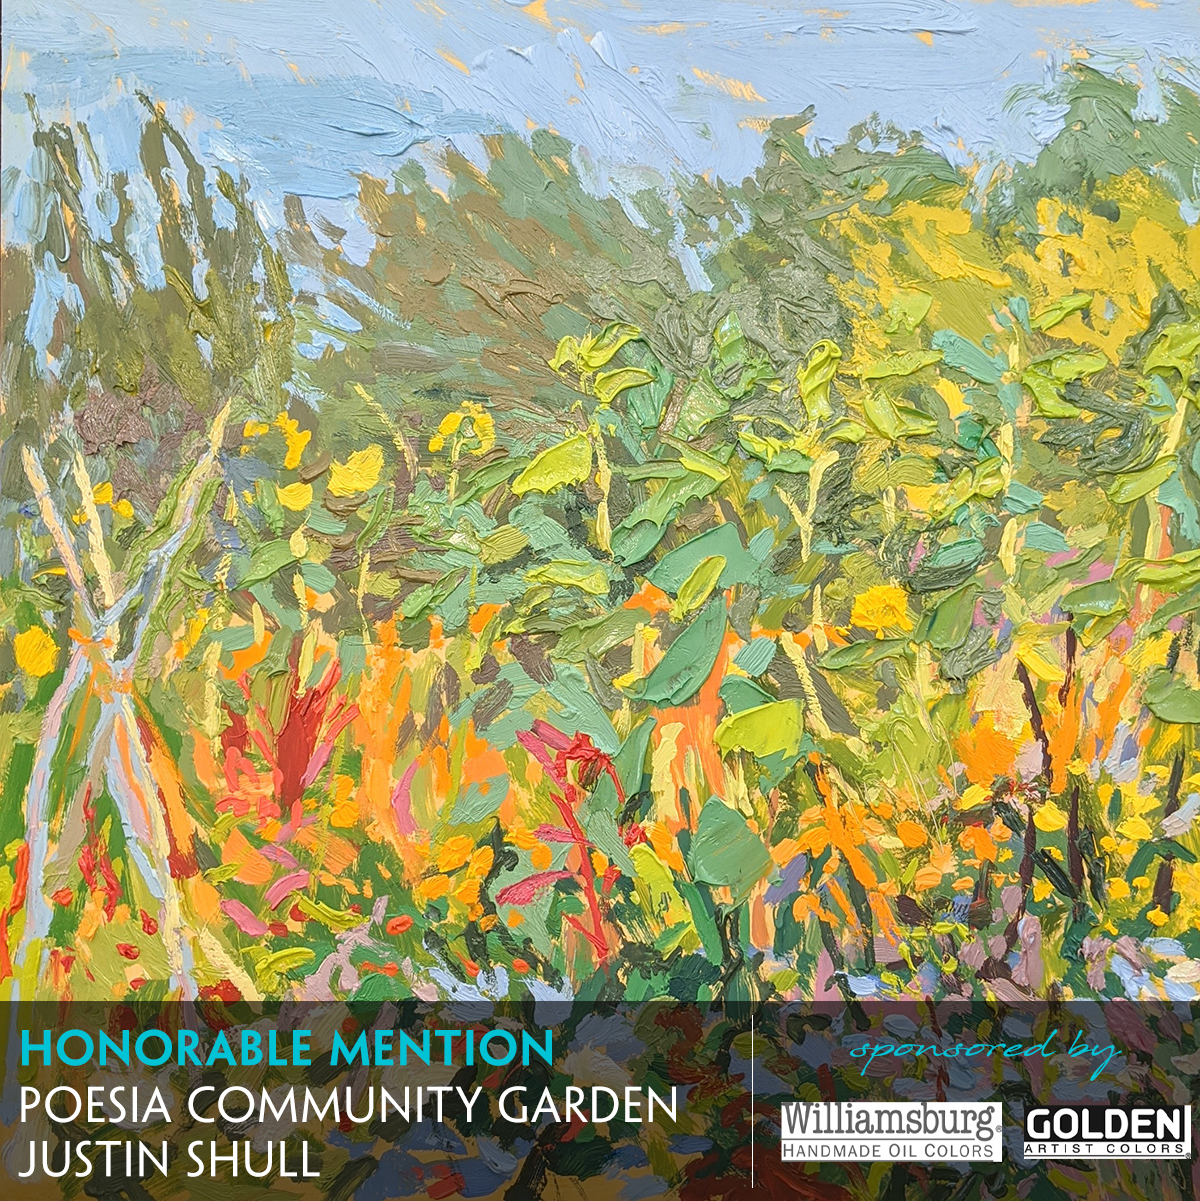 Poesia Community Garden by Justin Shull